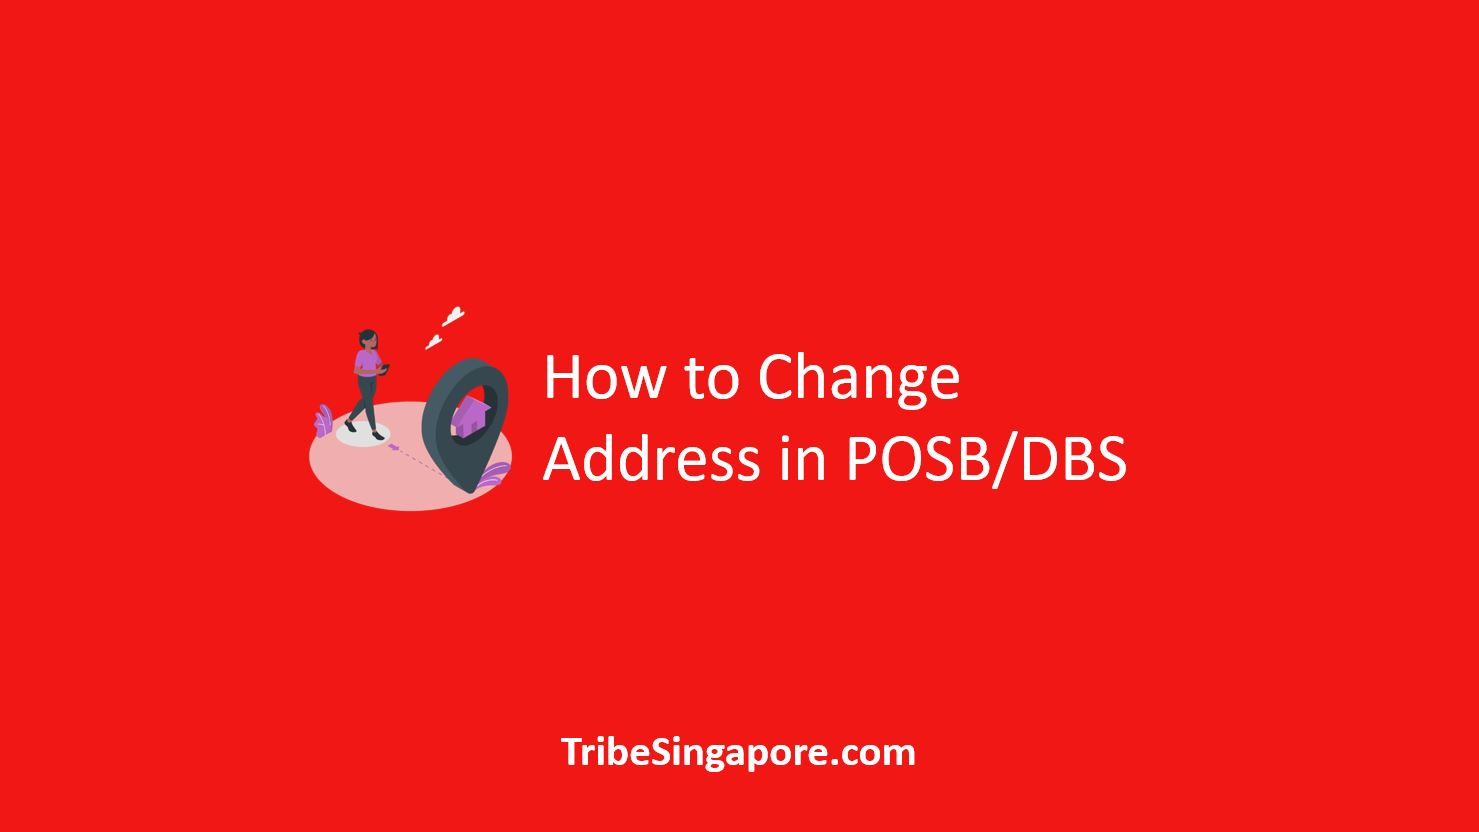 How to Change Address in POSB DBS